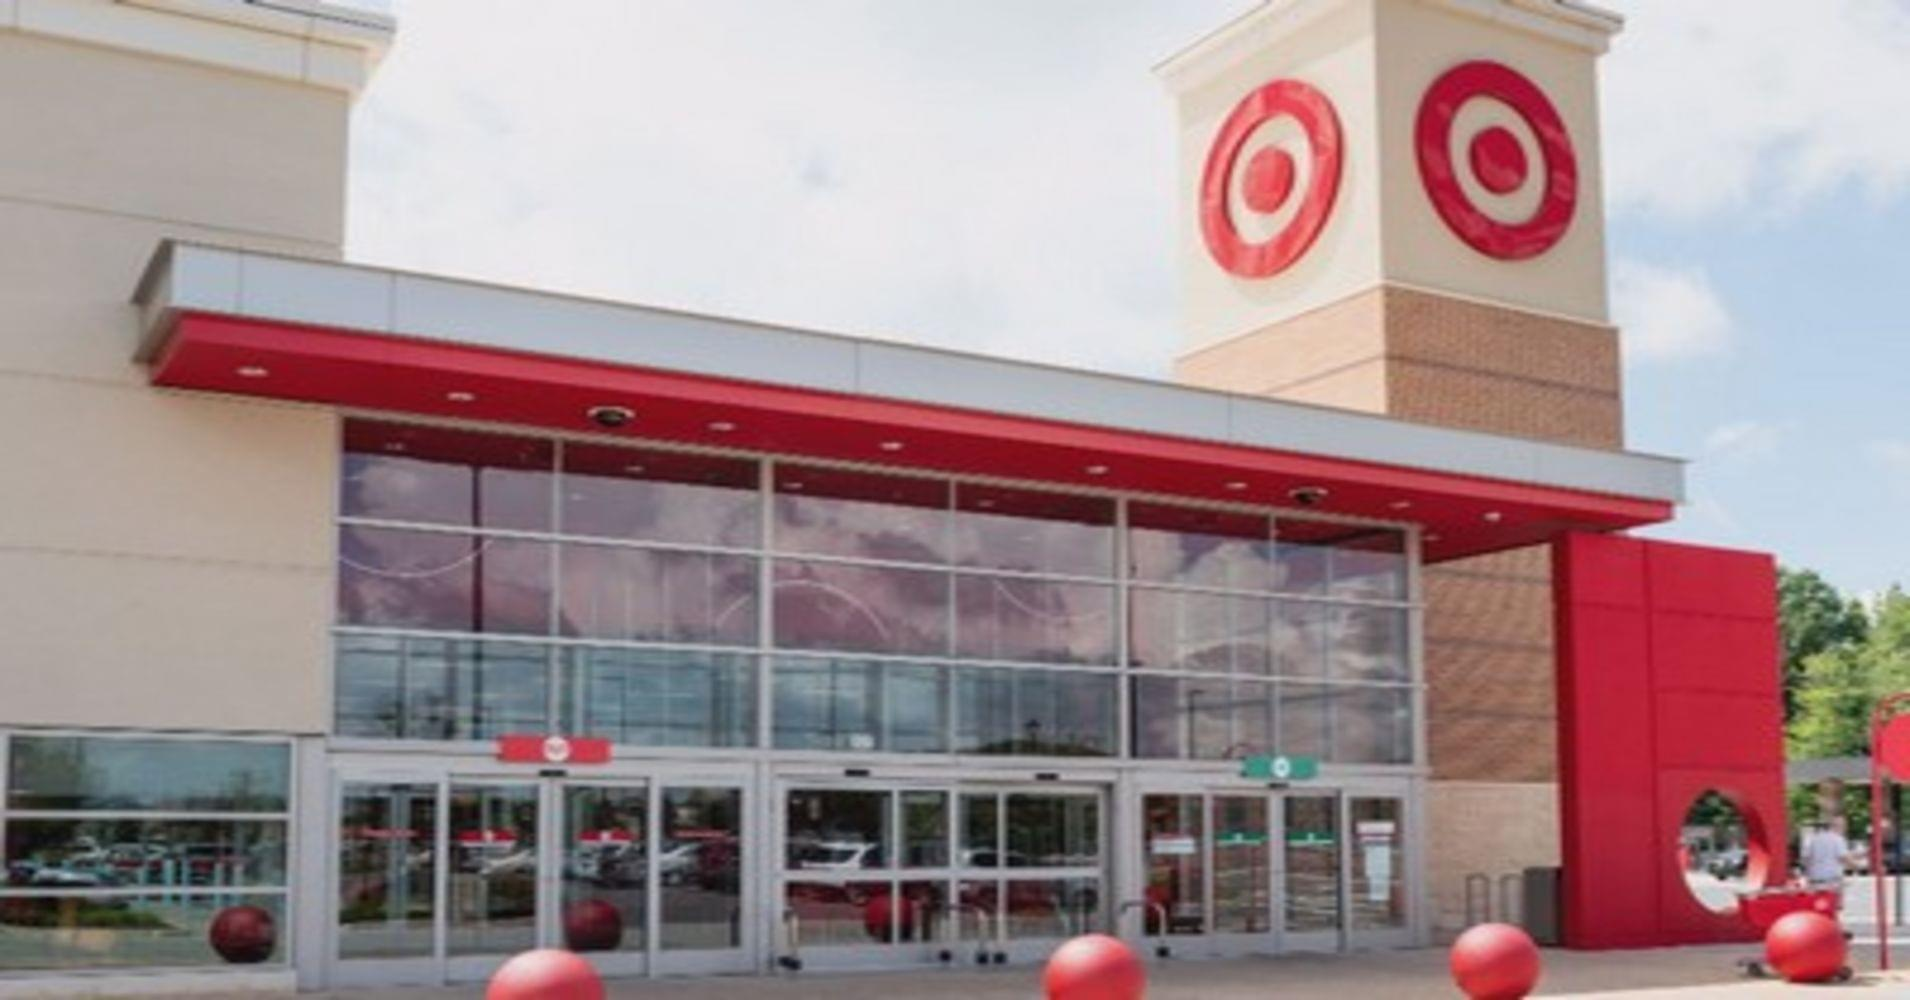 Woman Arrested for Slamming Beers and Shoplifting in a Target